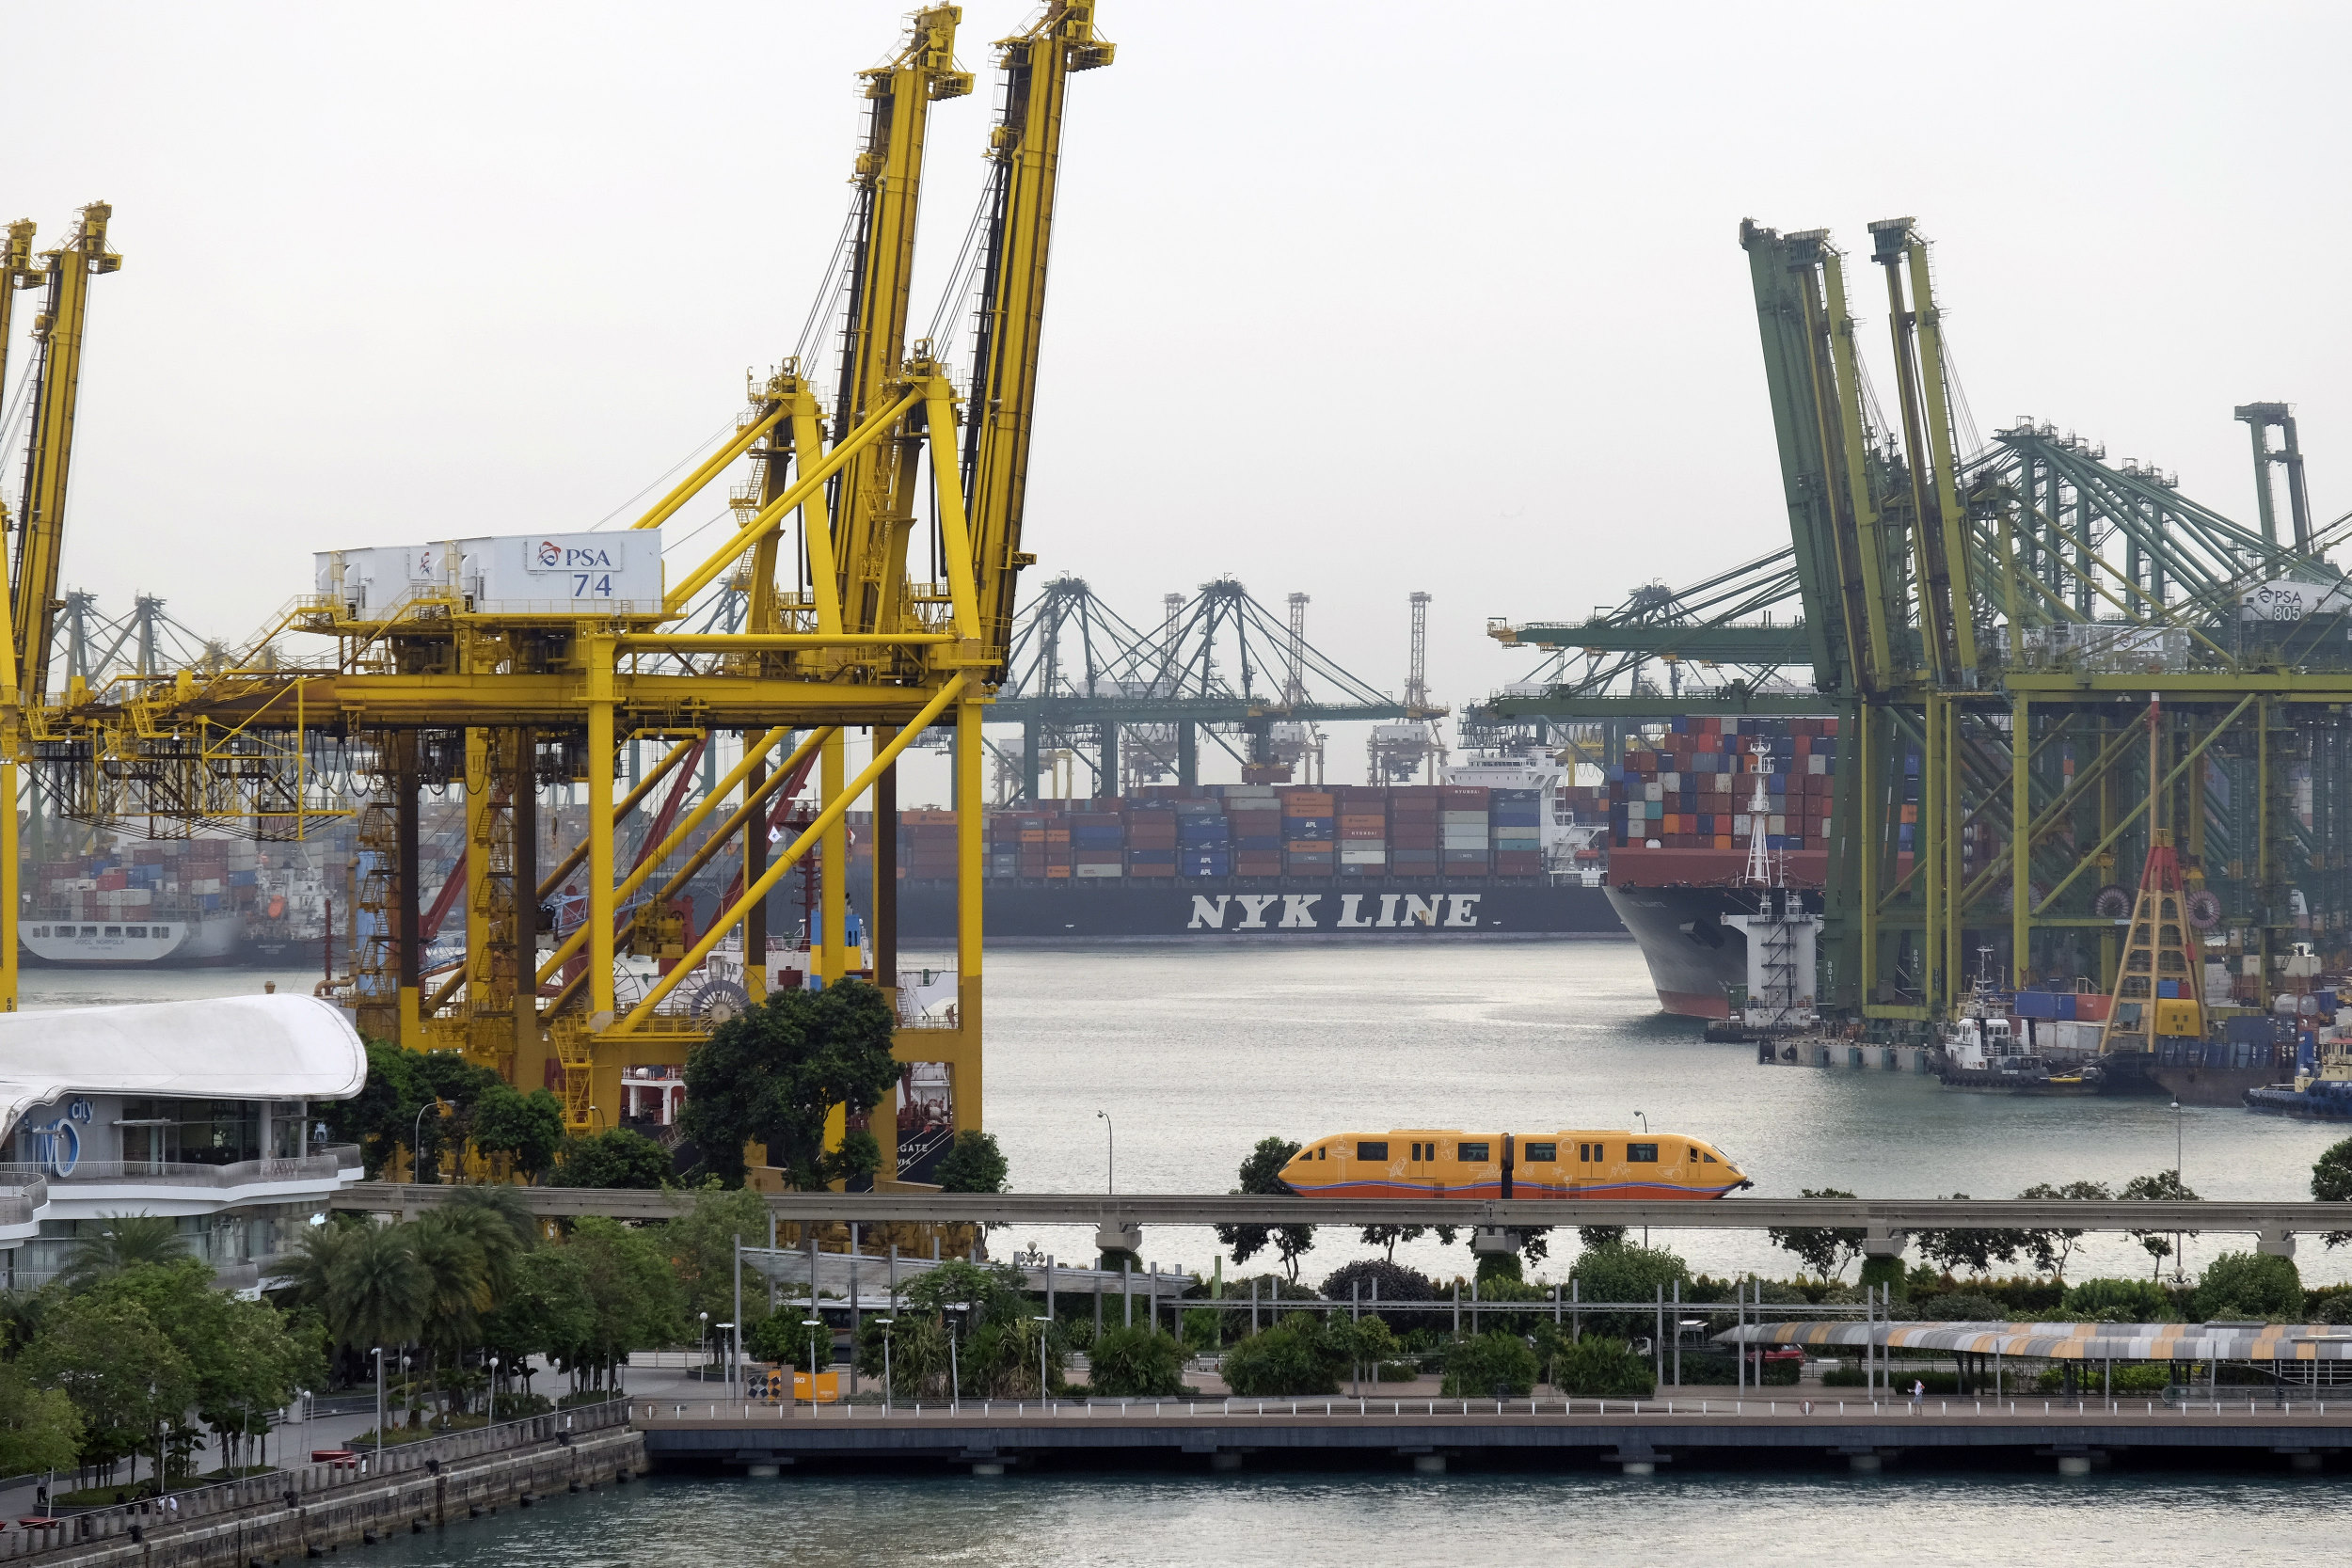 Singapore Haven Containerterminal Kranen Trein NYK Line